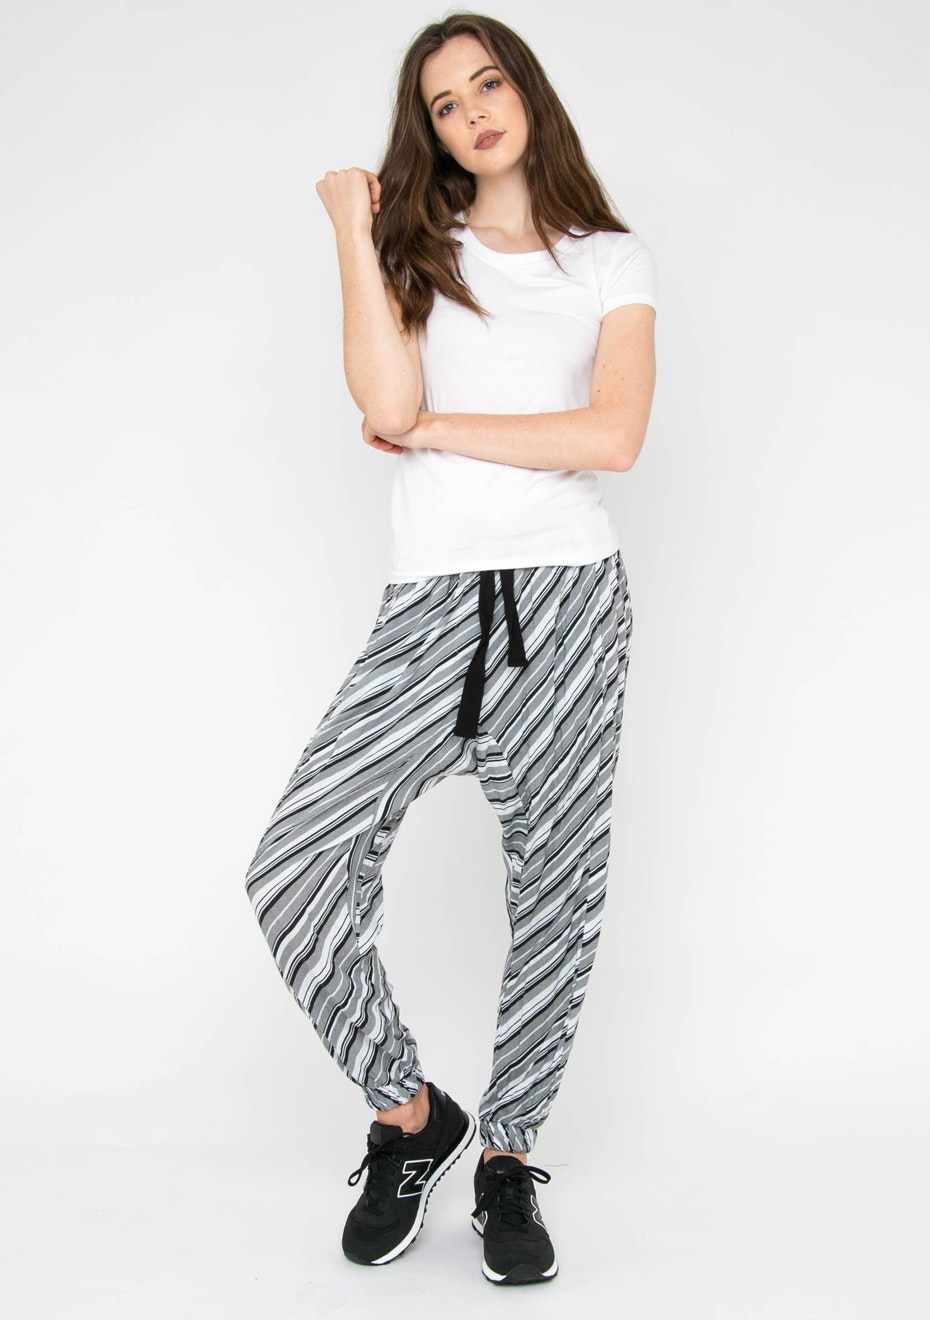 All About Eve - Clique Pant - Black & White